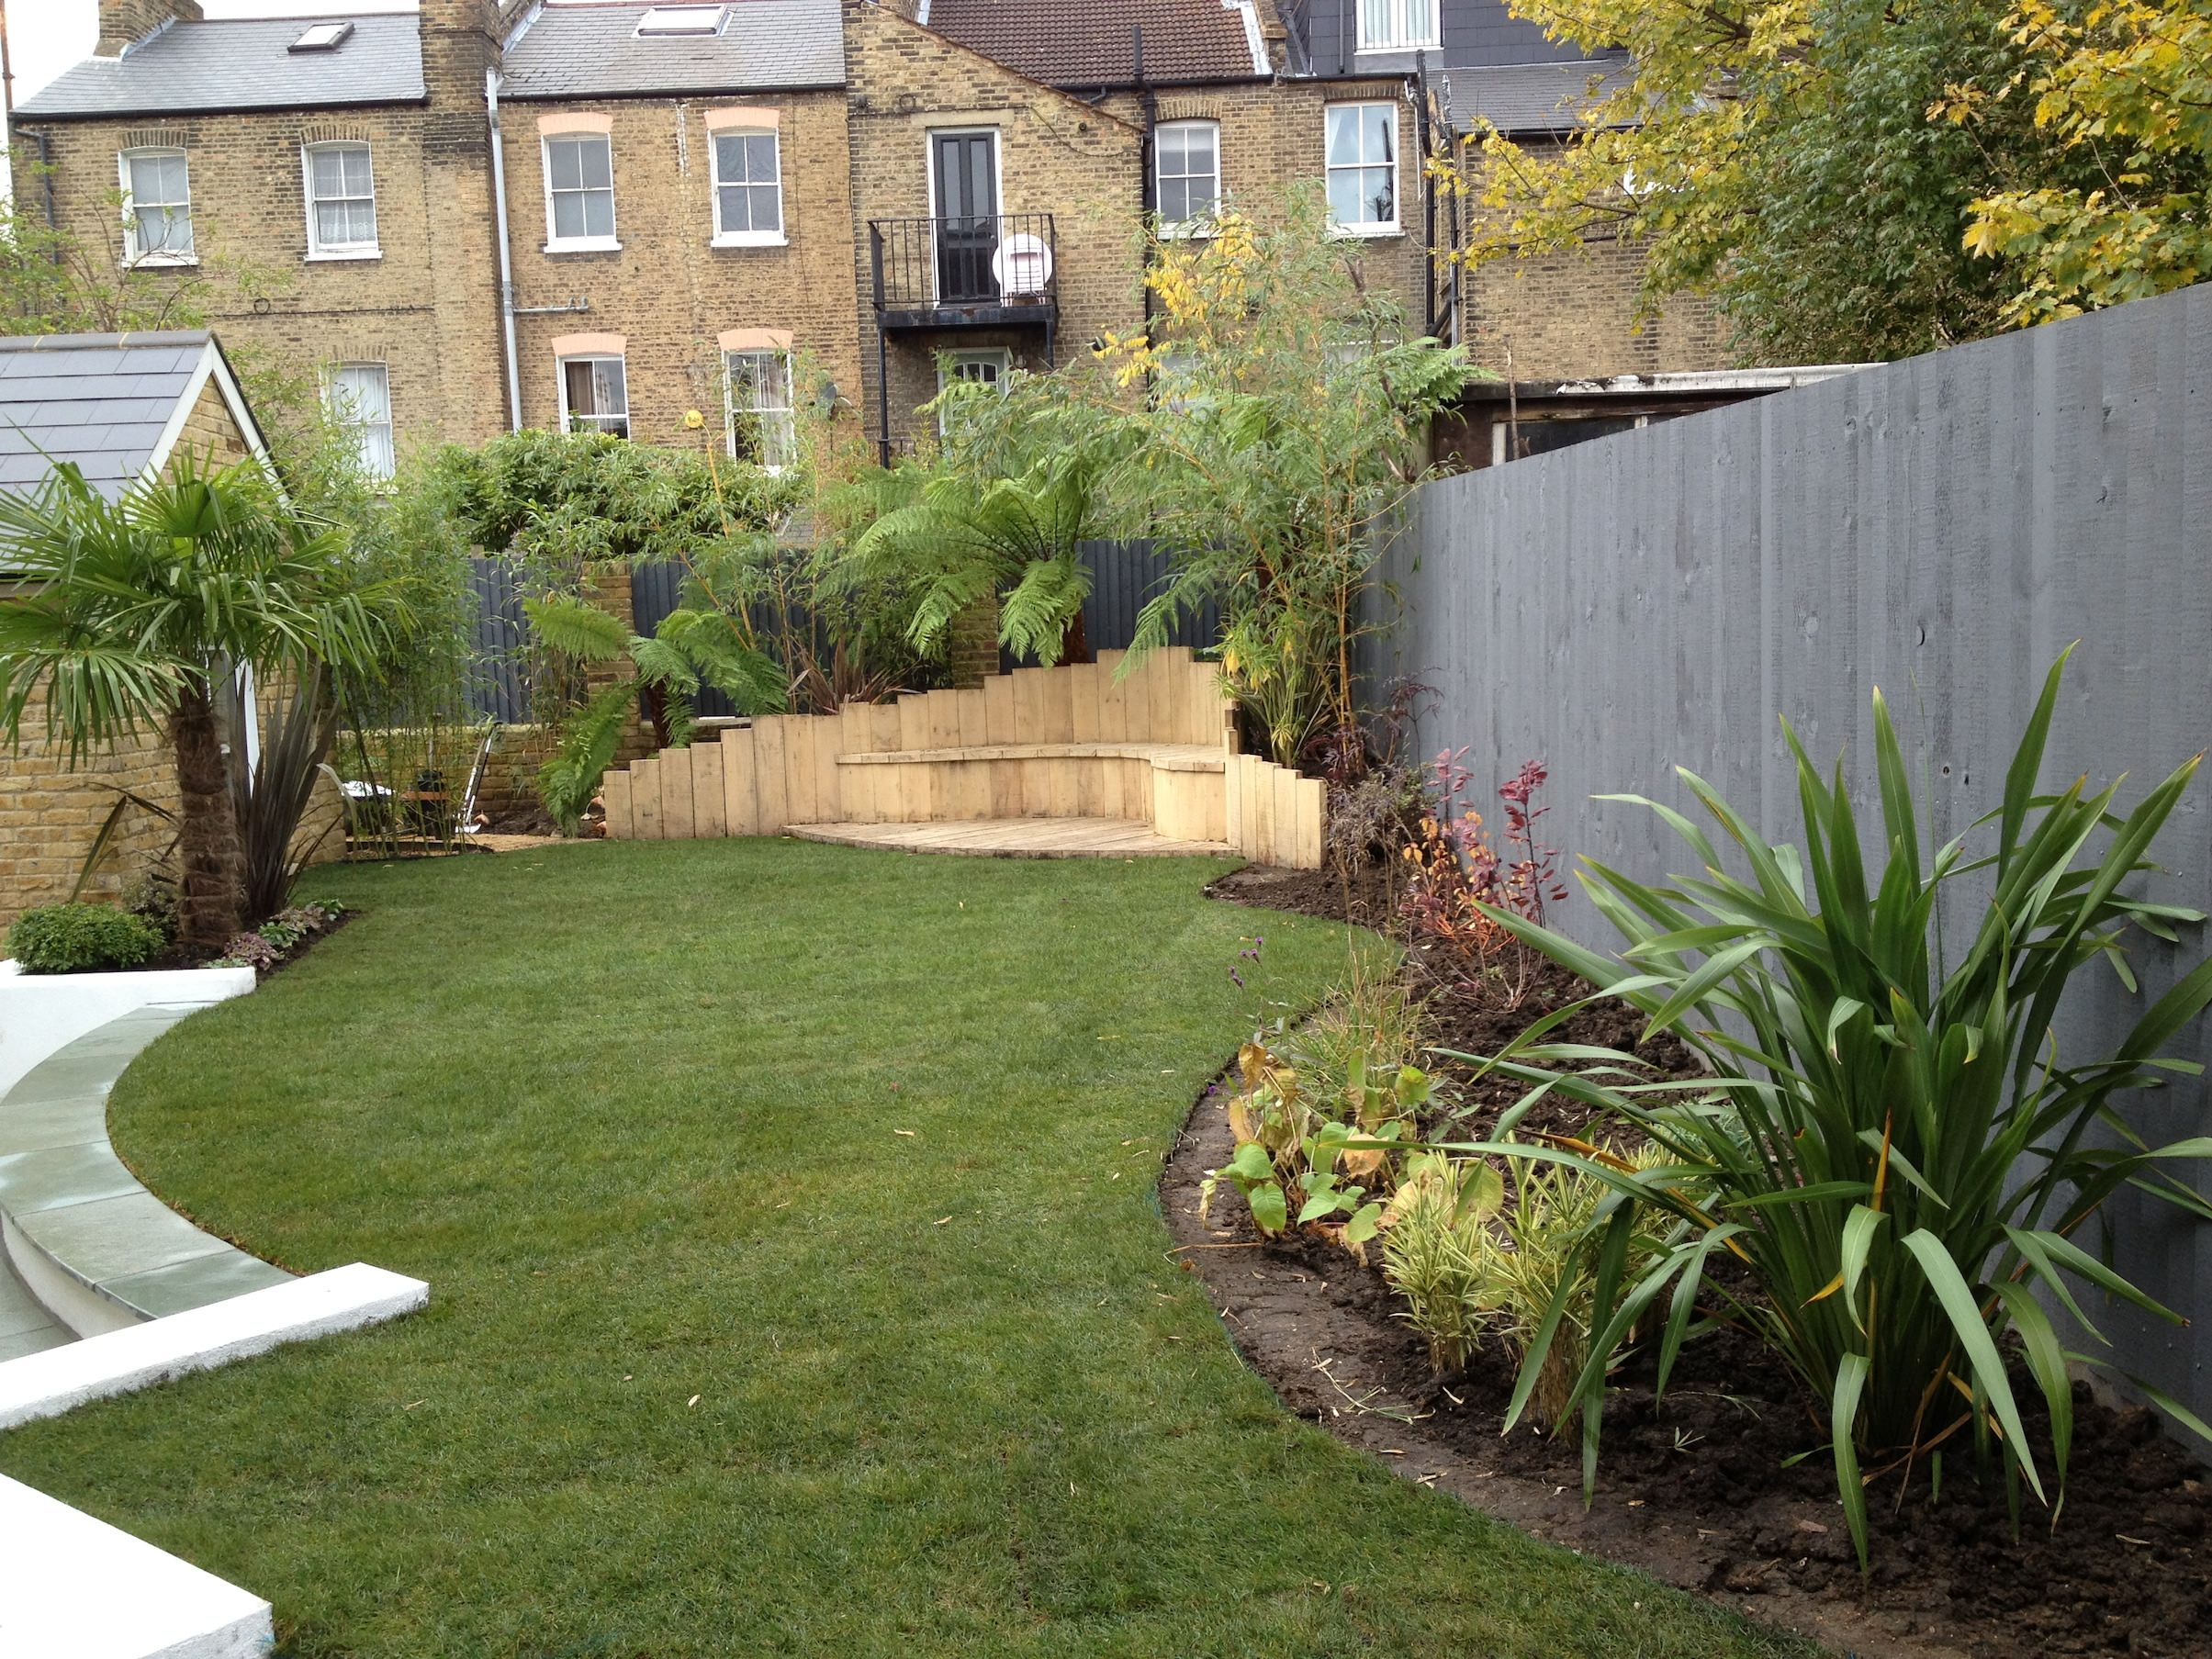 Low maintenance garden designs garden club london for New garden design